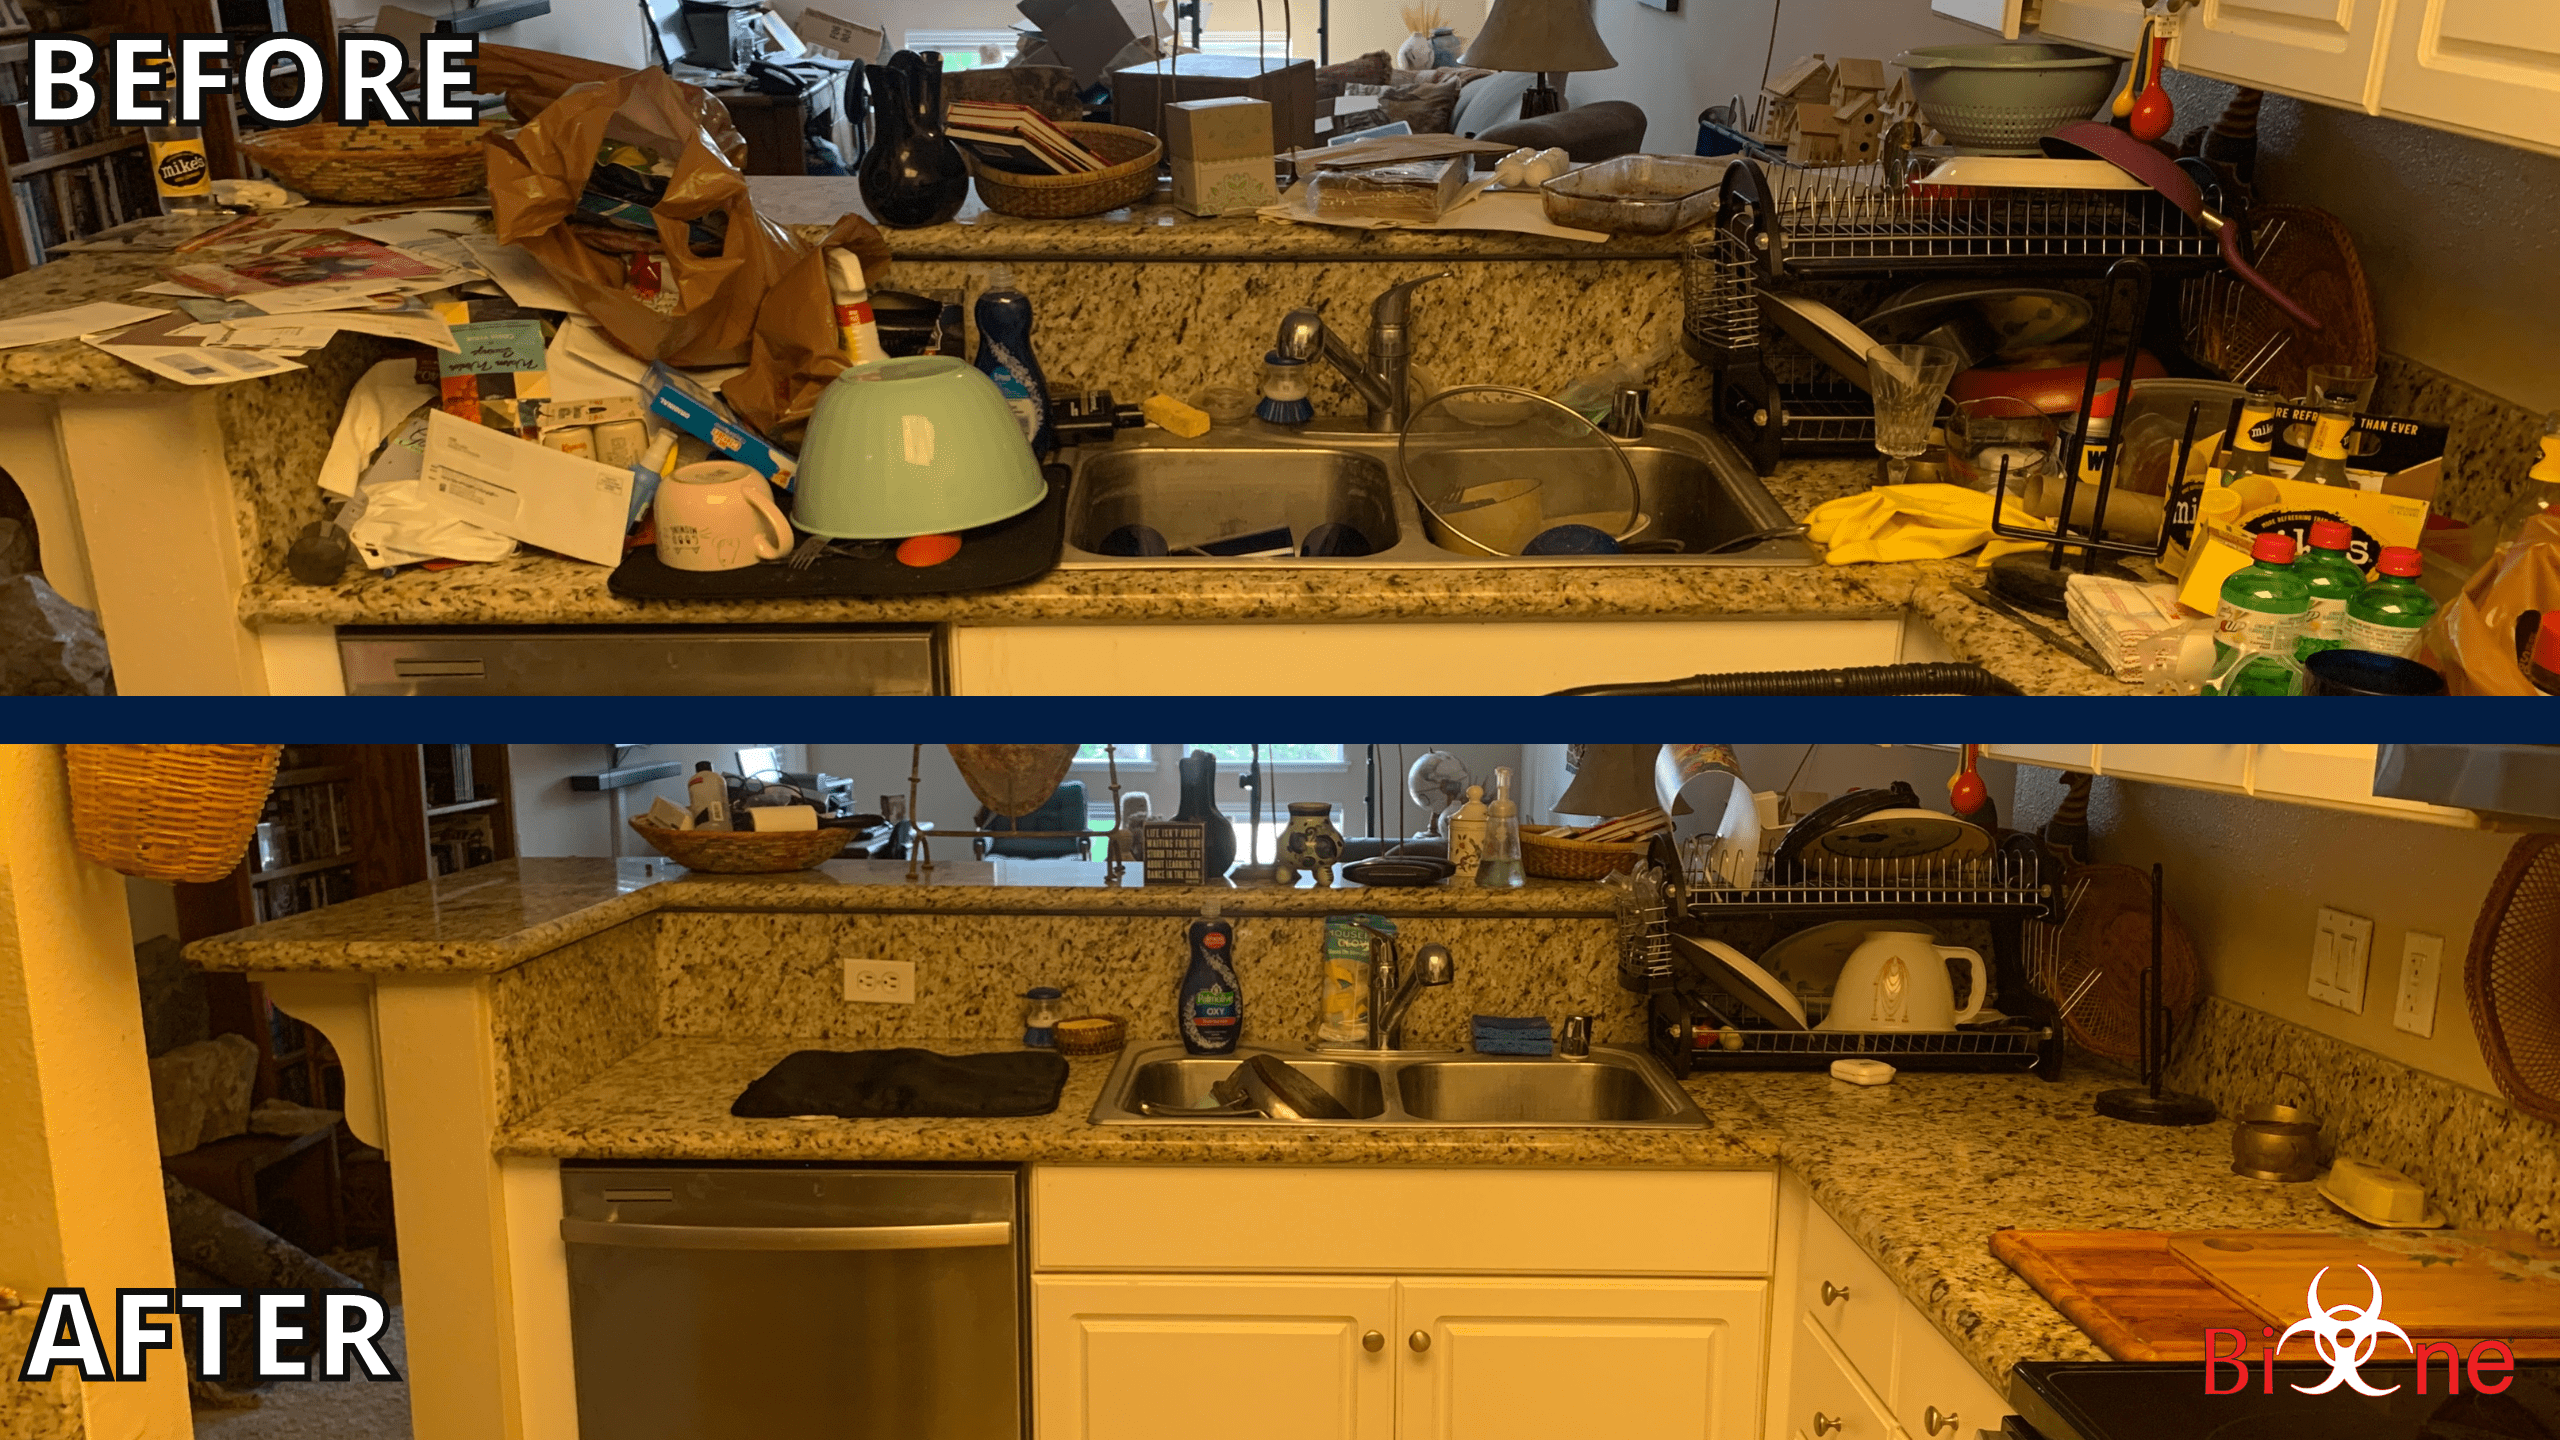 Picture is divided in two parts and shows a 'before/after' scenario. The first half shows the 'before' image, a kitchen space with multiple items scattered around. The second half shows the 'after' image of the same space once it was cleaned with the help of the Bio-One Team. On the bottom right corner is the Bio-One logo.